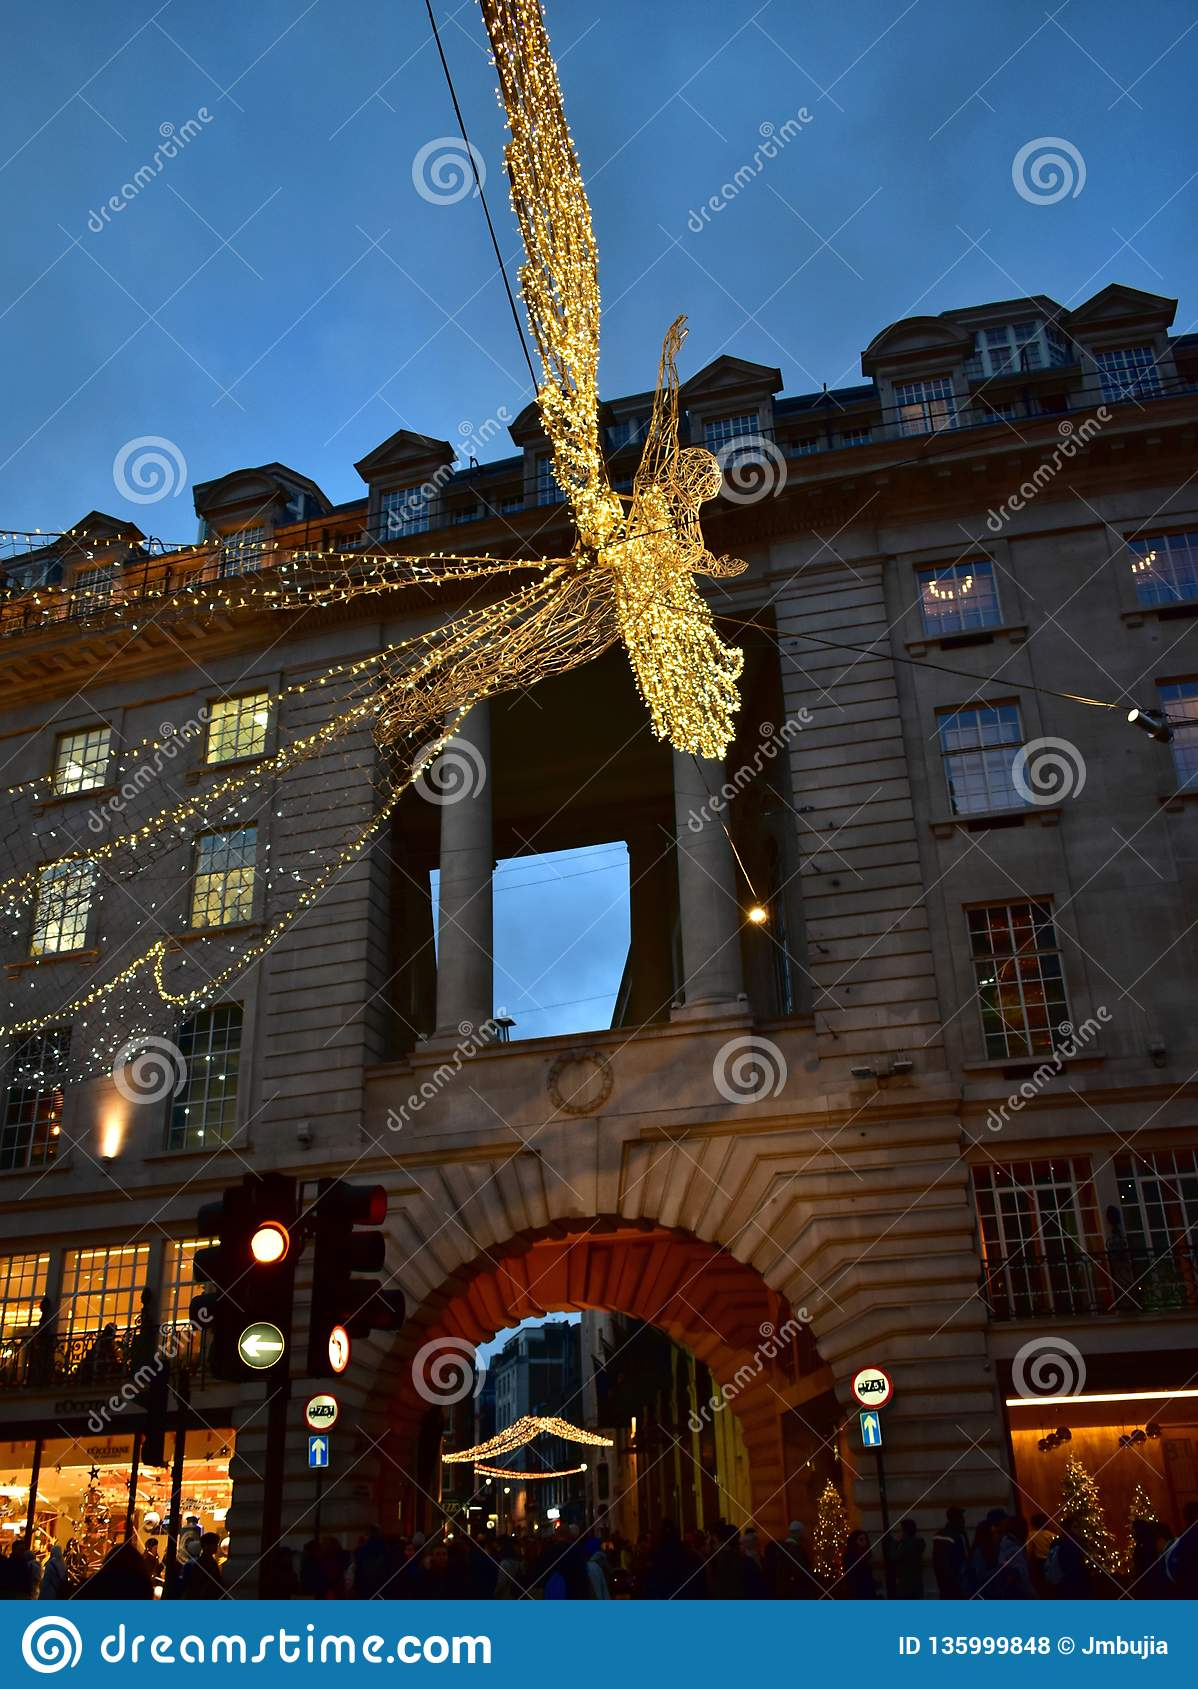 United Kingdom Christmas.Regent Street With Christmas Lights Crowded With People